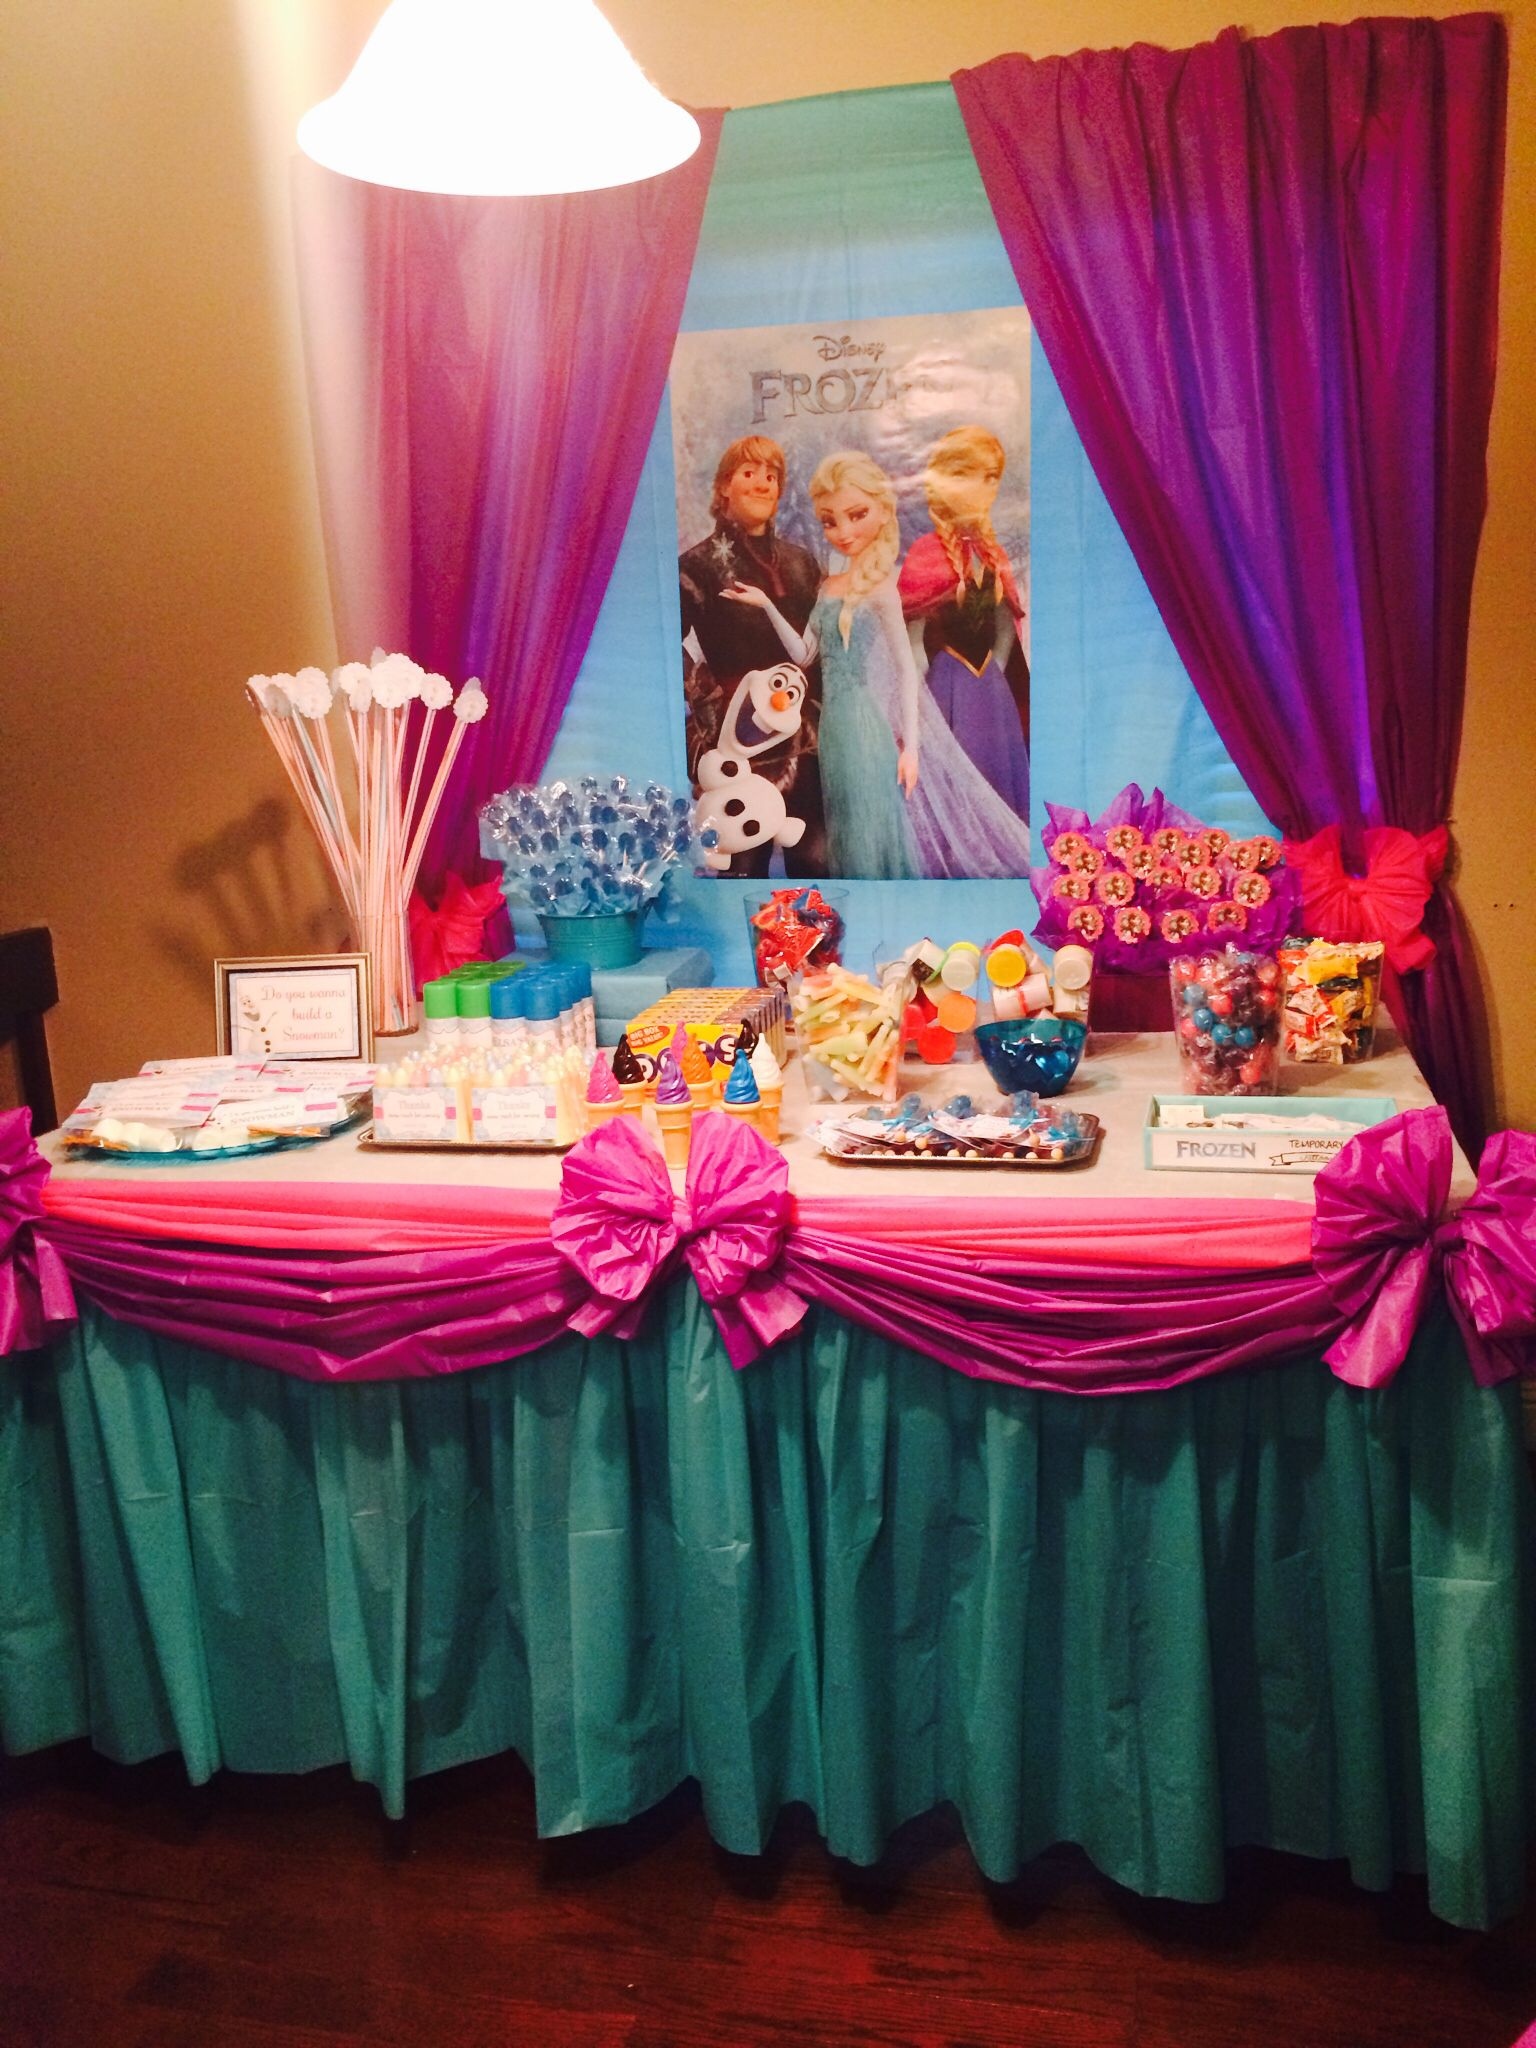 Frozen party cake table Frozen Birthday Party Pinterest Frozen